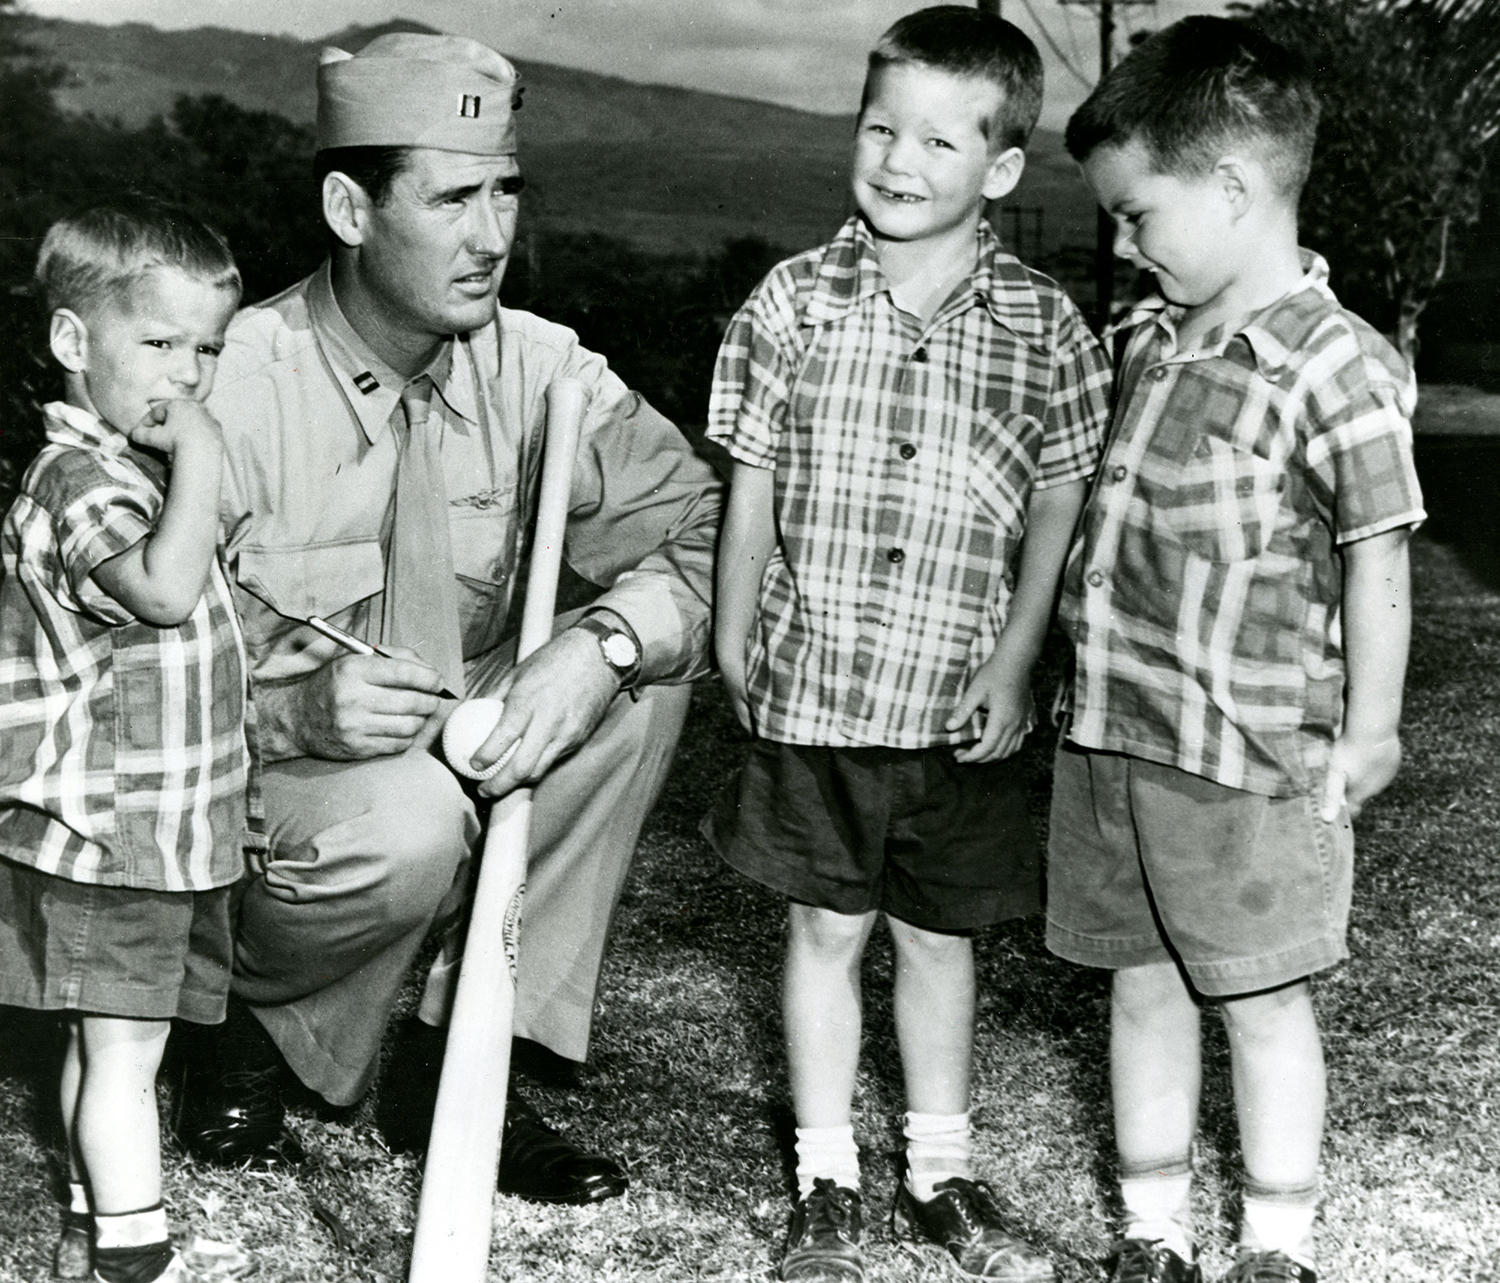 "Ted Williams signs autographs for some young fans while in Honolulu in 1953, en route to Korea. <a href=""http://collection.baseballhall.org/islandora/object/islandora%3A501812"">PASTIME</a> (National Baseball Hall of Fame)"